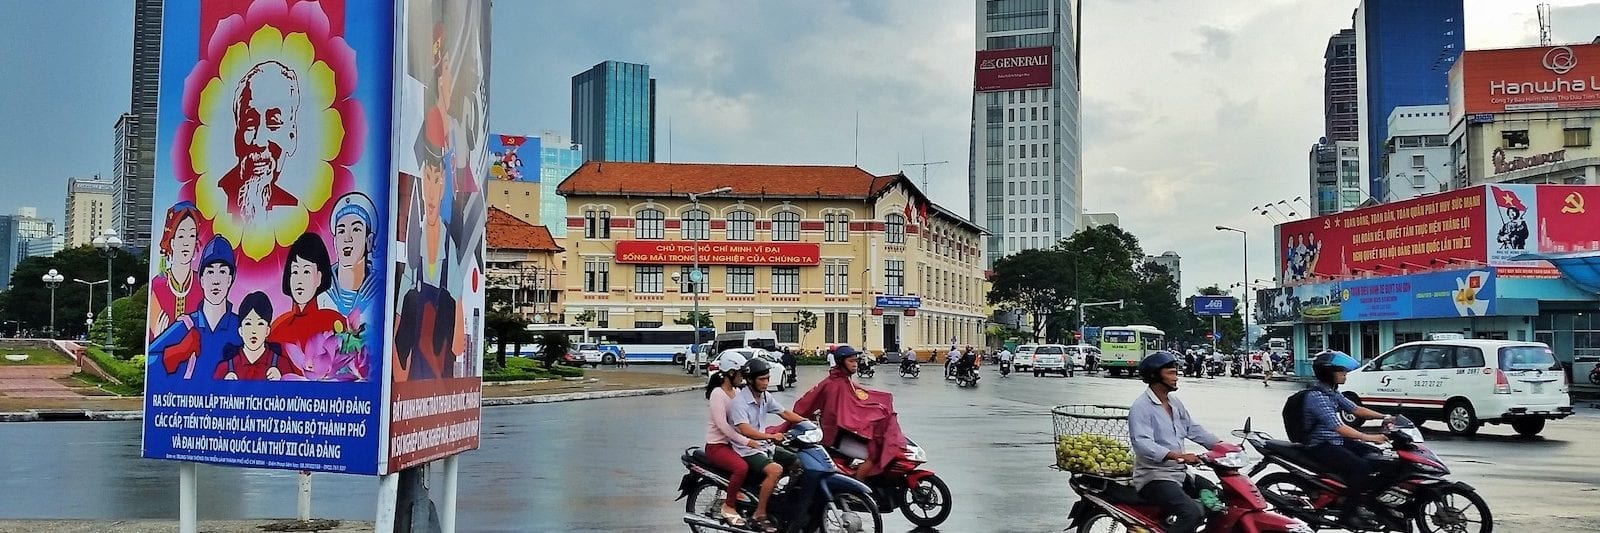 Tran Hung Dao Roundabout in HCMC in July